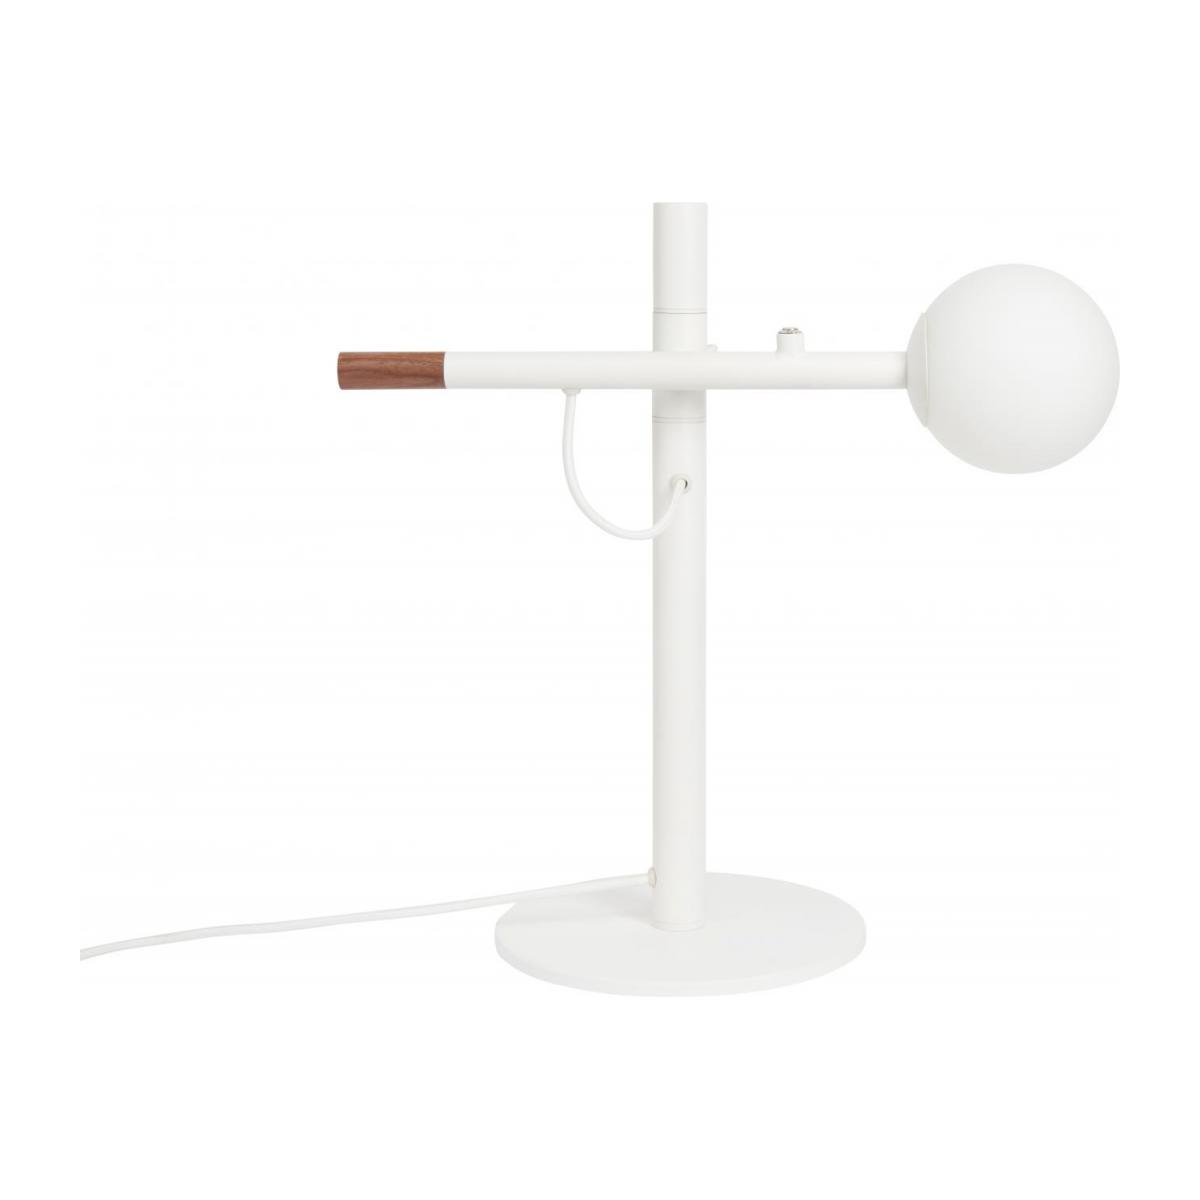 Metal and wood table lamp, white - Design by Gaston Lobet n°2